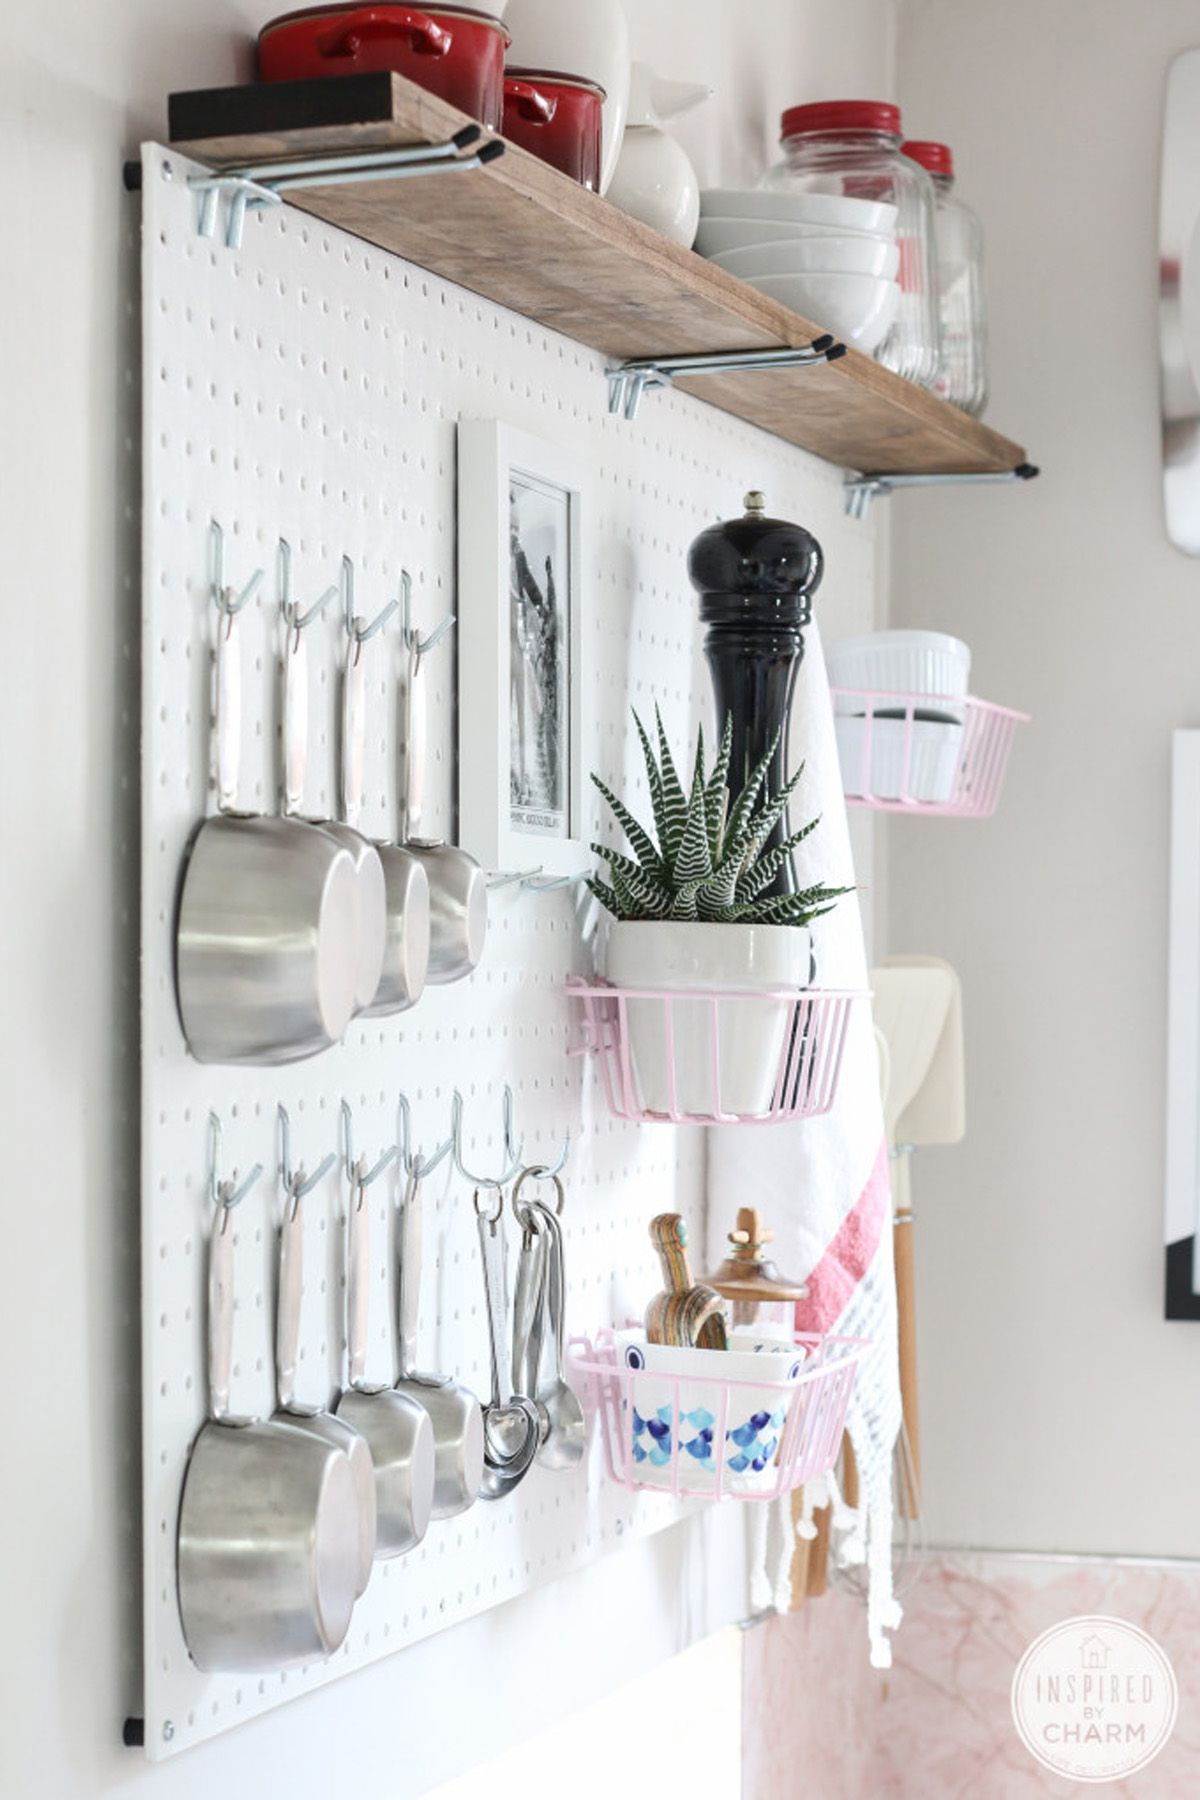 25 Genius DIY Storage Solutions Your Home Needs Now | Kitchens ...